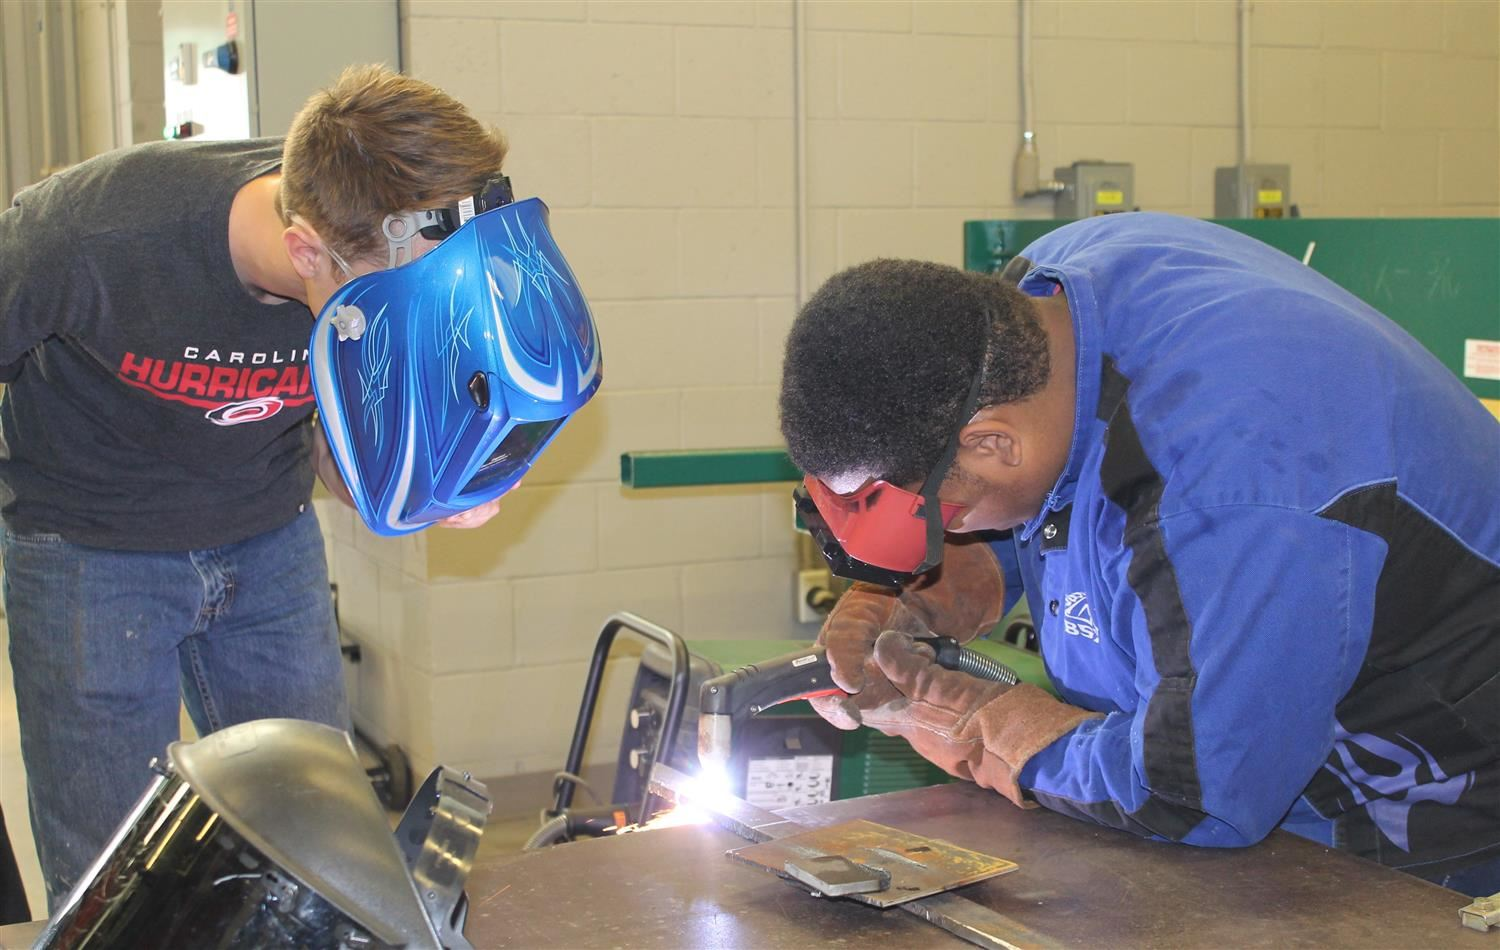 Two student welding